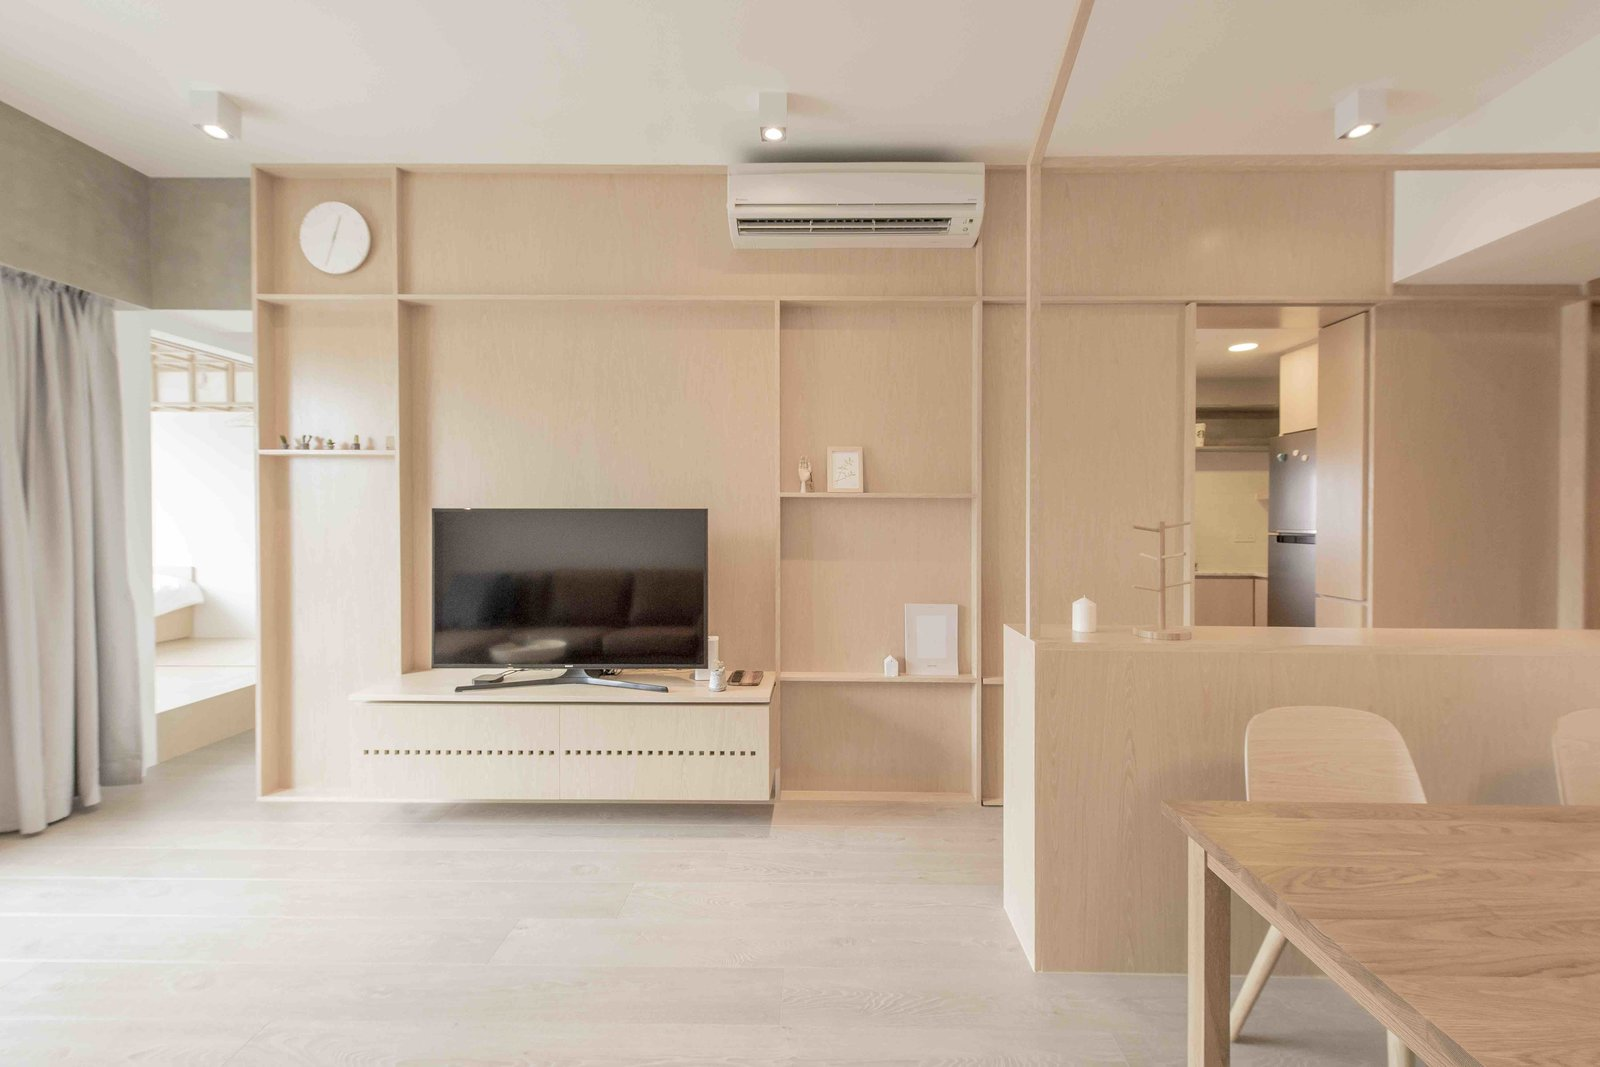 Living Room, Light Hardwood Floor, Ceiling Lighting, Storage, and Shelves A multifunctional plywood-and-wood veneer wall defines the living area of a simple yet elegant Hong Kong apartment.  Photo 2 of 15 in An Origami-Inspired Apartment in Hong Kong With Tons of Smart Storage